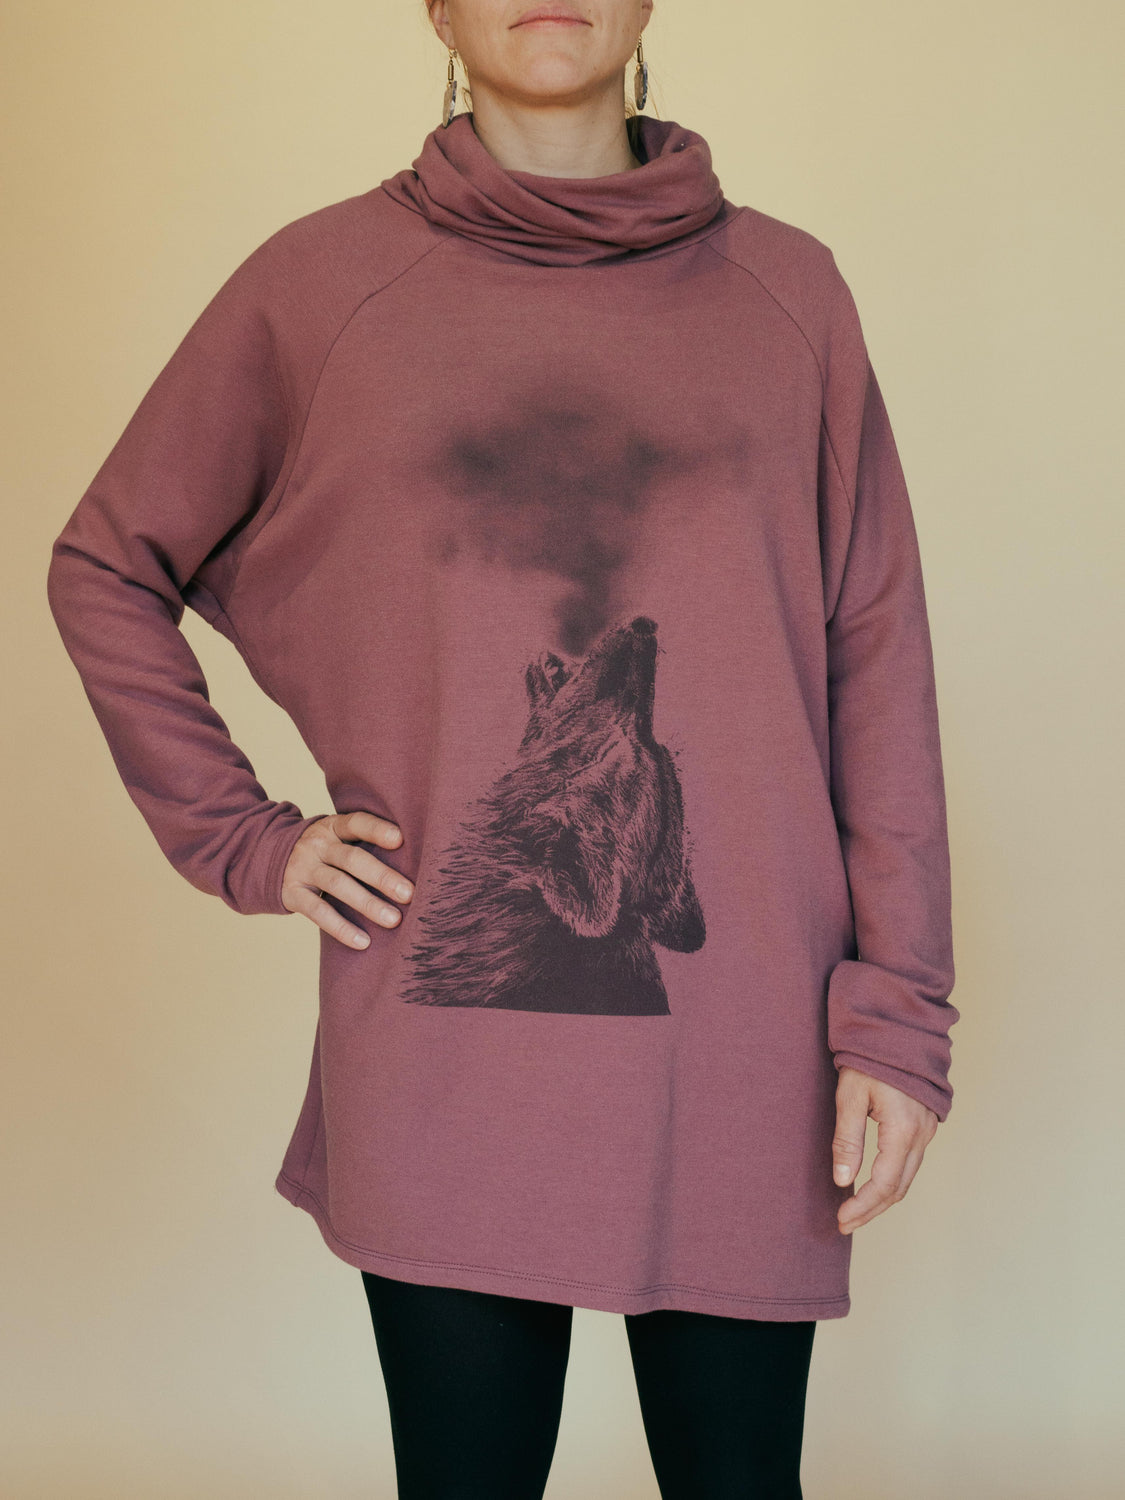 cokluch-chandail-wolf-rose-fleece